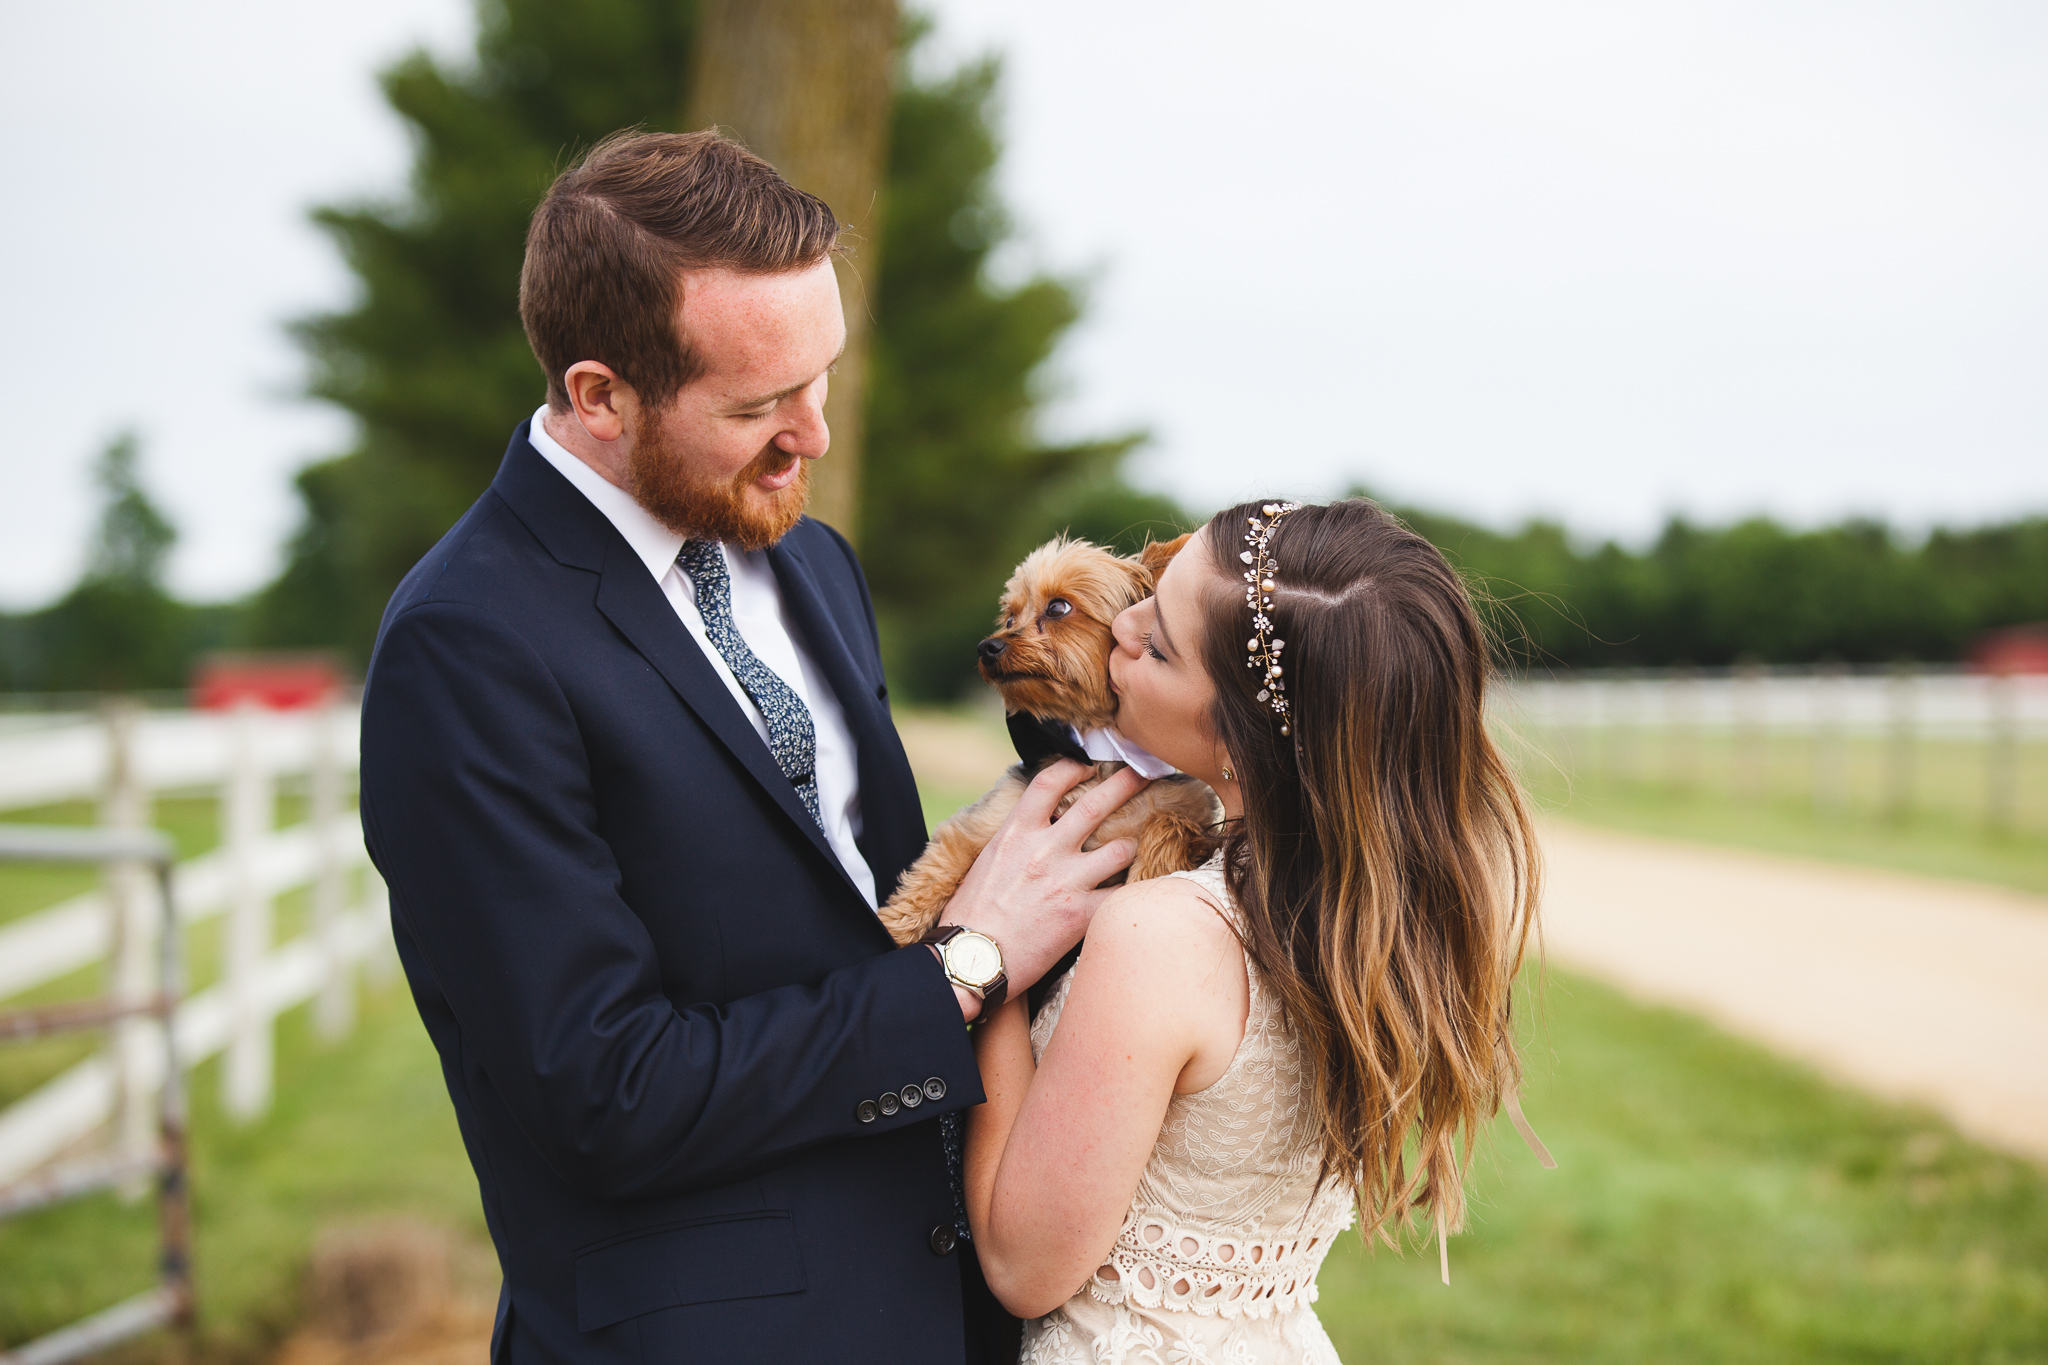 Family Farm Wedding in South Jersey Photography - Rustic Barn NJ - Millville, Vineland, Pittsgrove, Cape May, Ocean City - Creative Photographer, Candid, Joyful, Adventure. Elopement, Casual - Yorkie Puppy Ring Bearer Dog